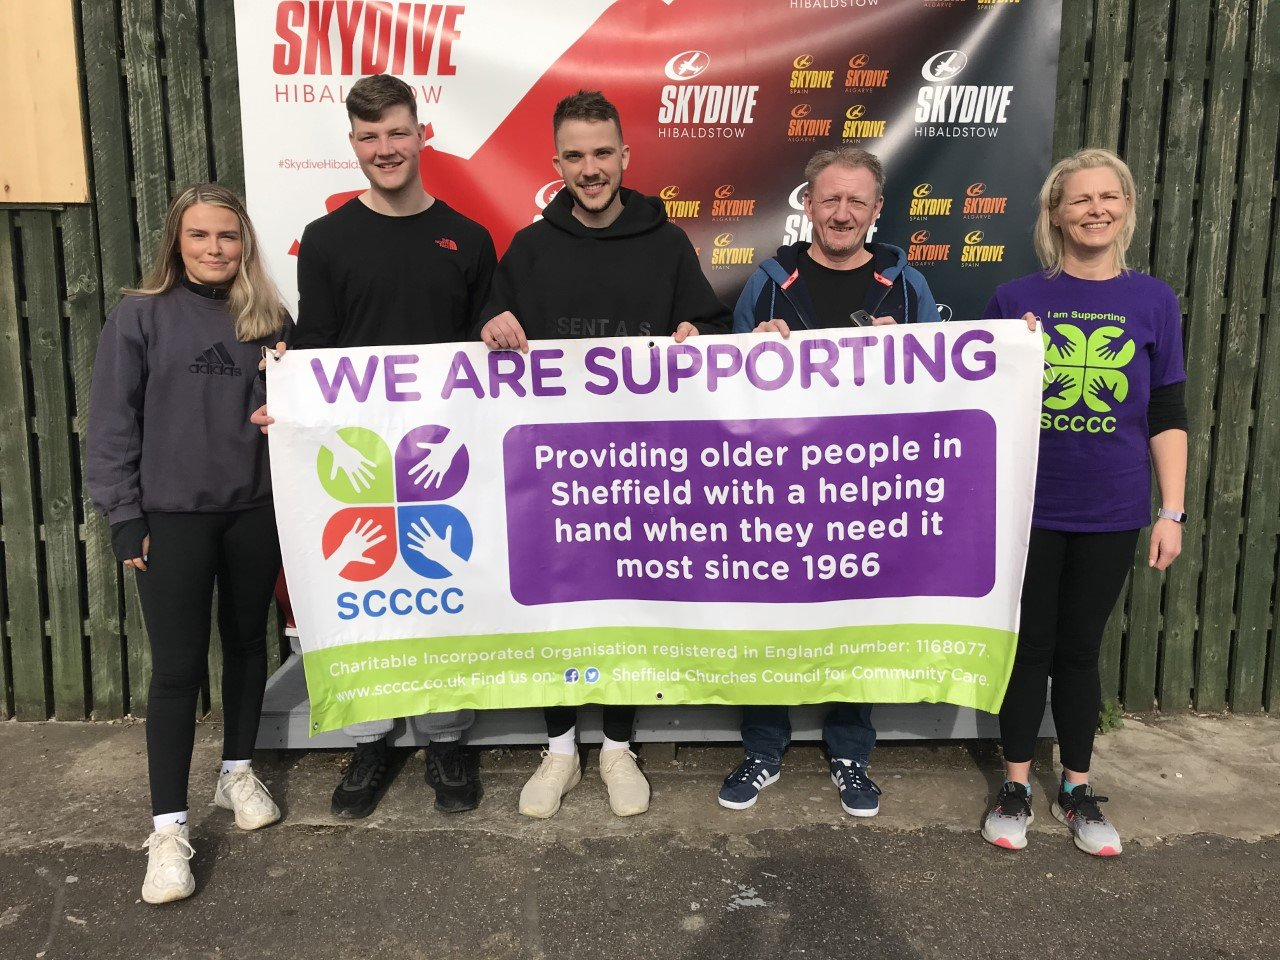 Record breaking skydive raises thousands for Sheffield older persons' cause